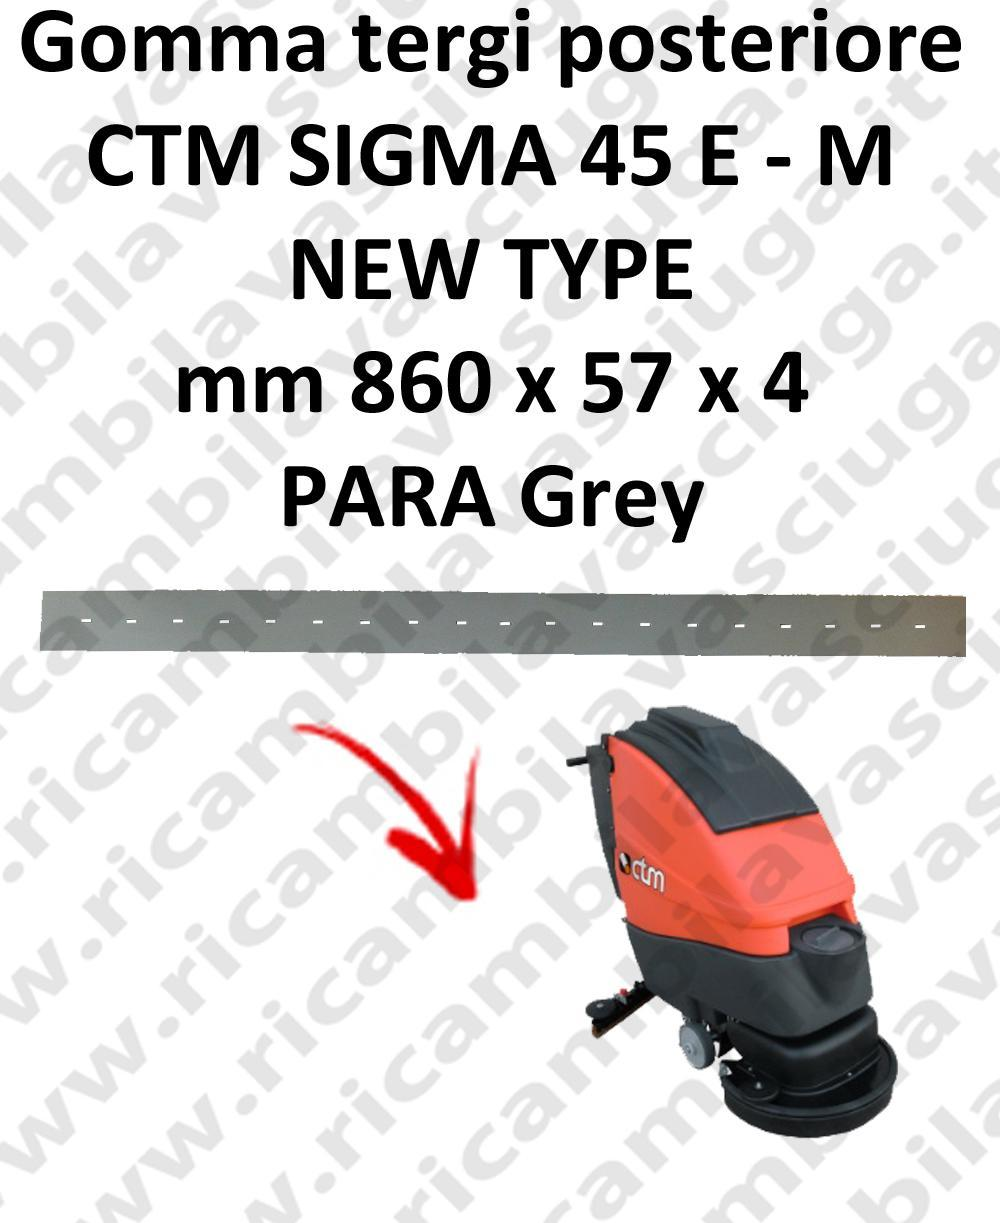 SIGMA 45 E - M new type squeegee rubber scrubber dryer back for CTM